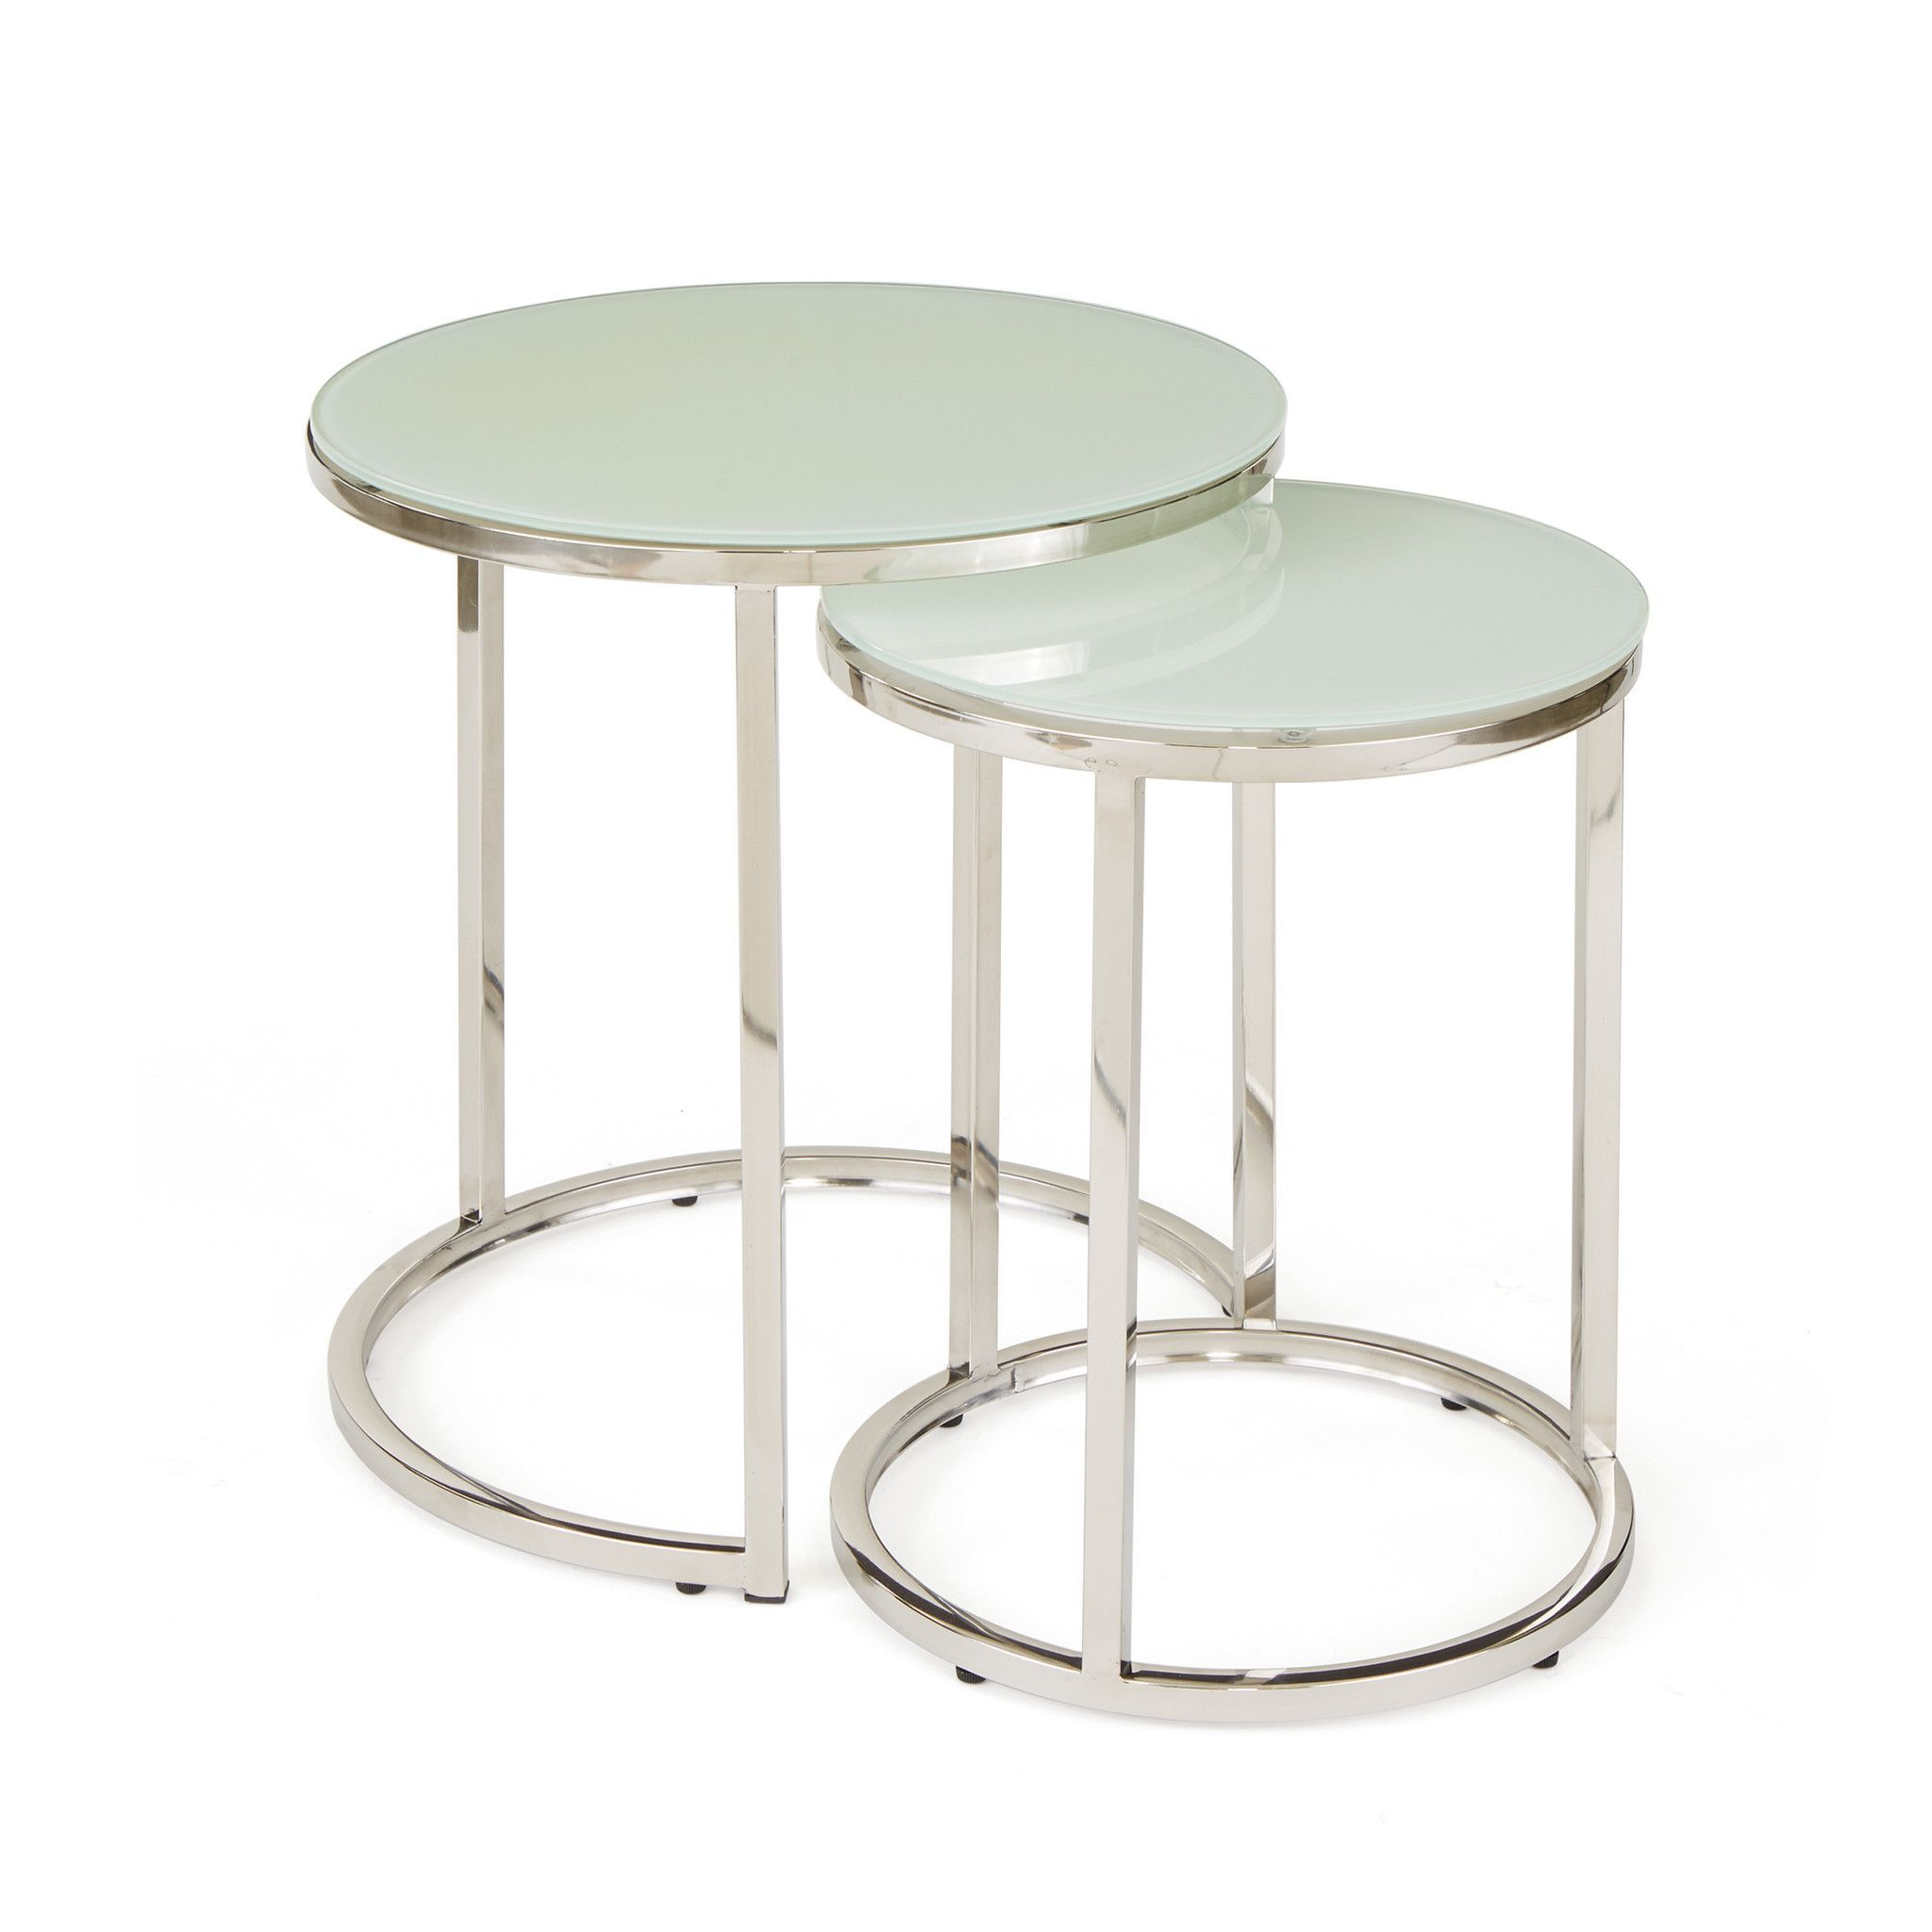 Round glass table top view hopkins nesting tables with round glass top on polished nickel metal